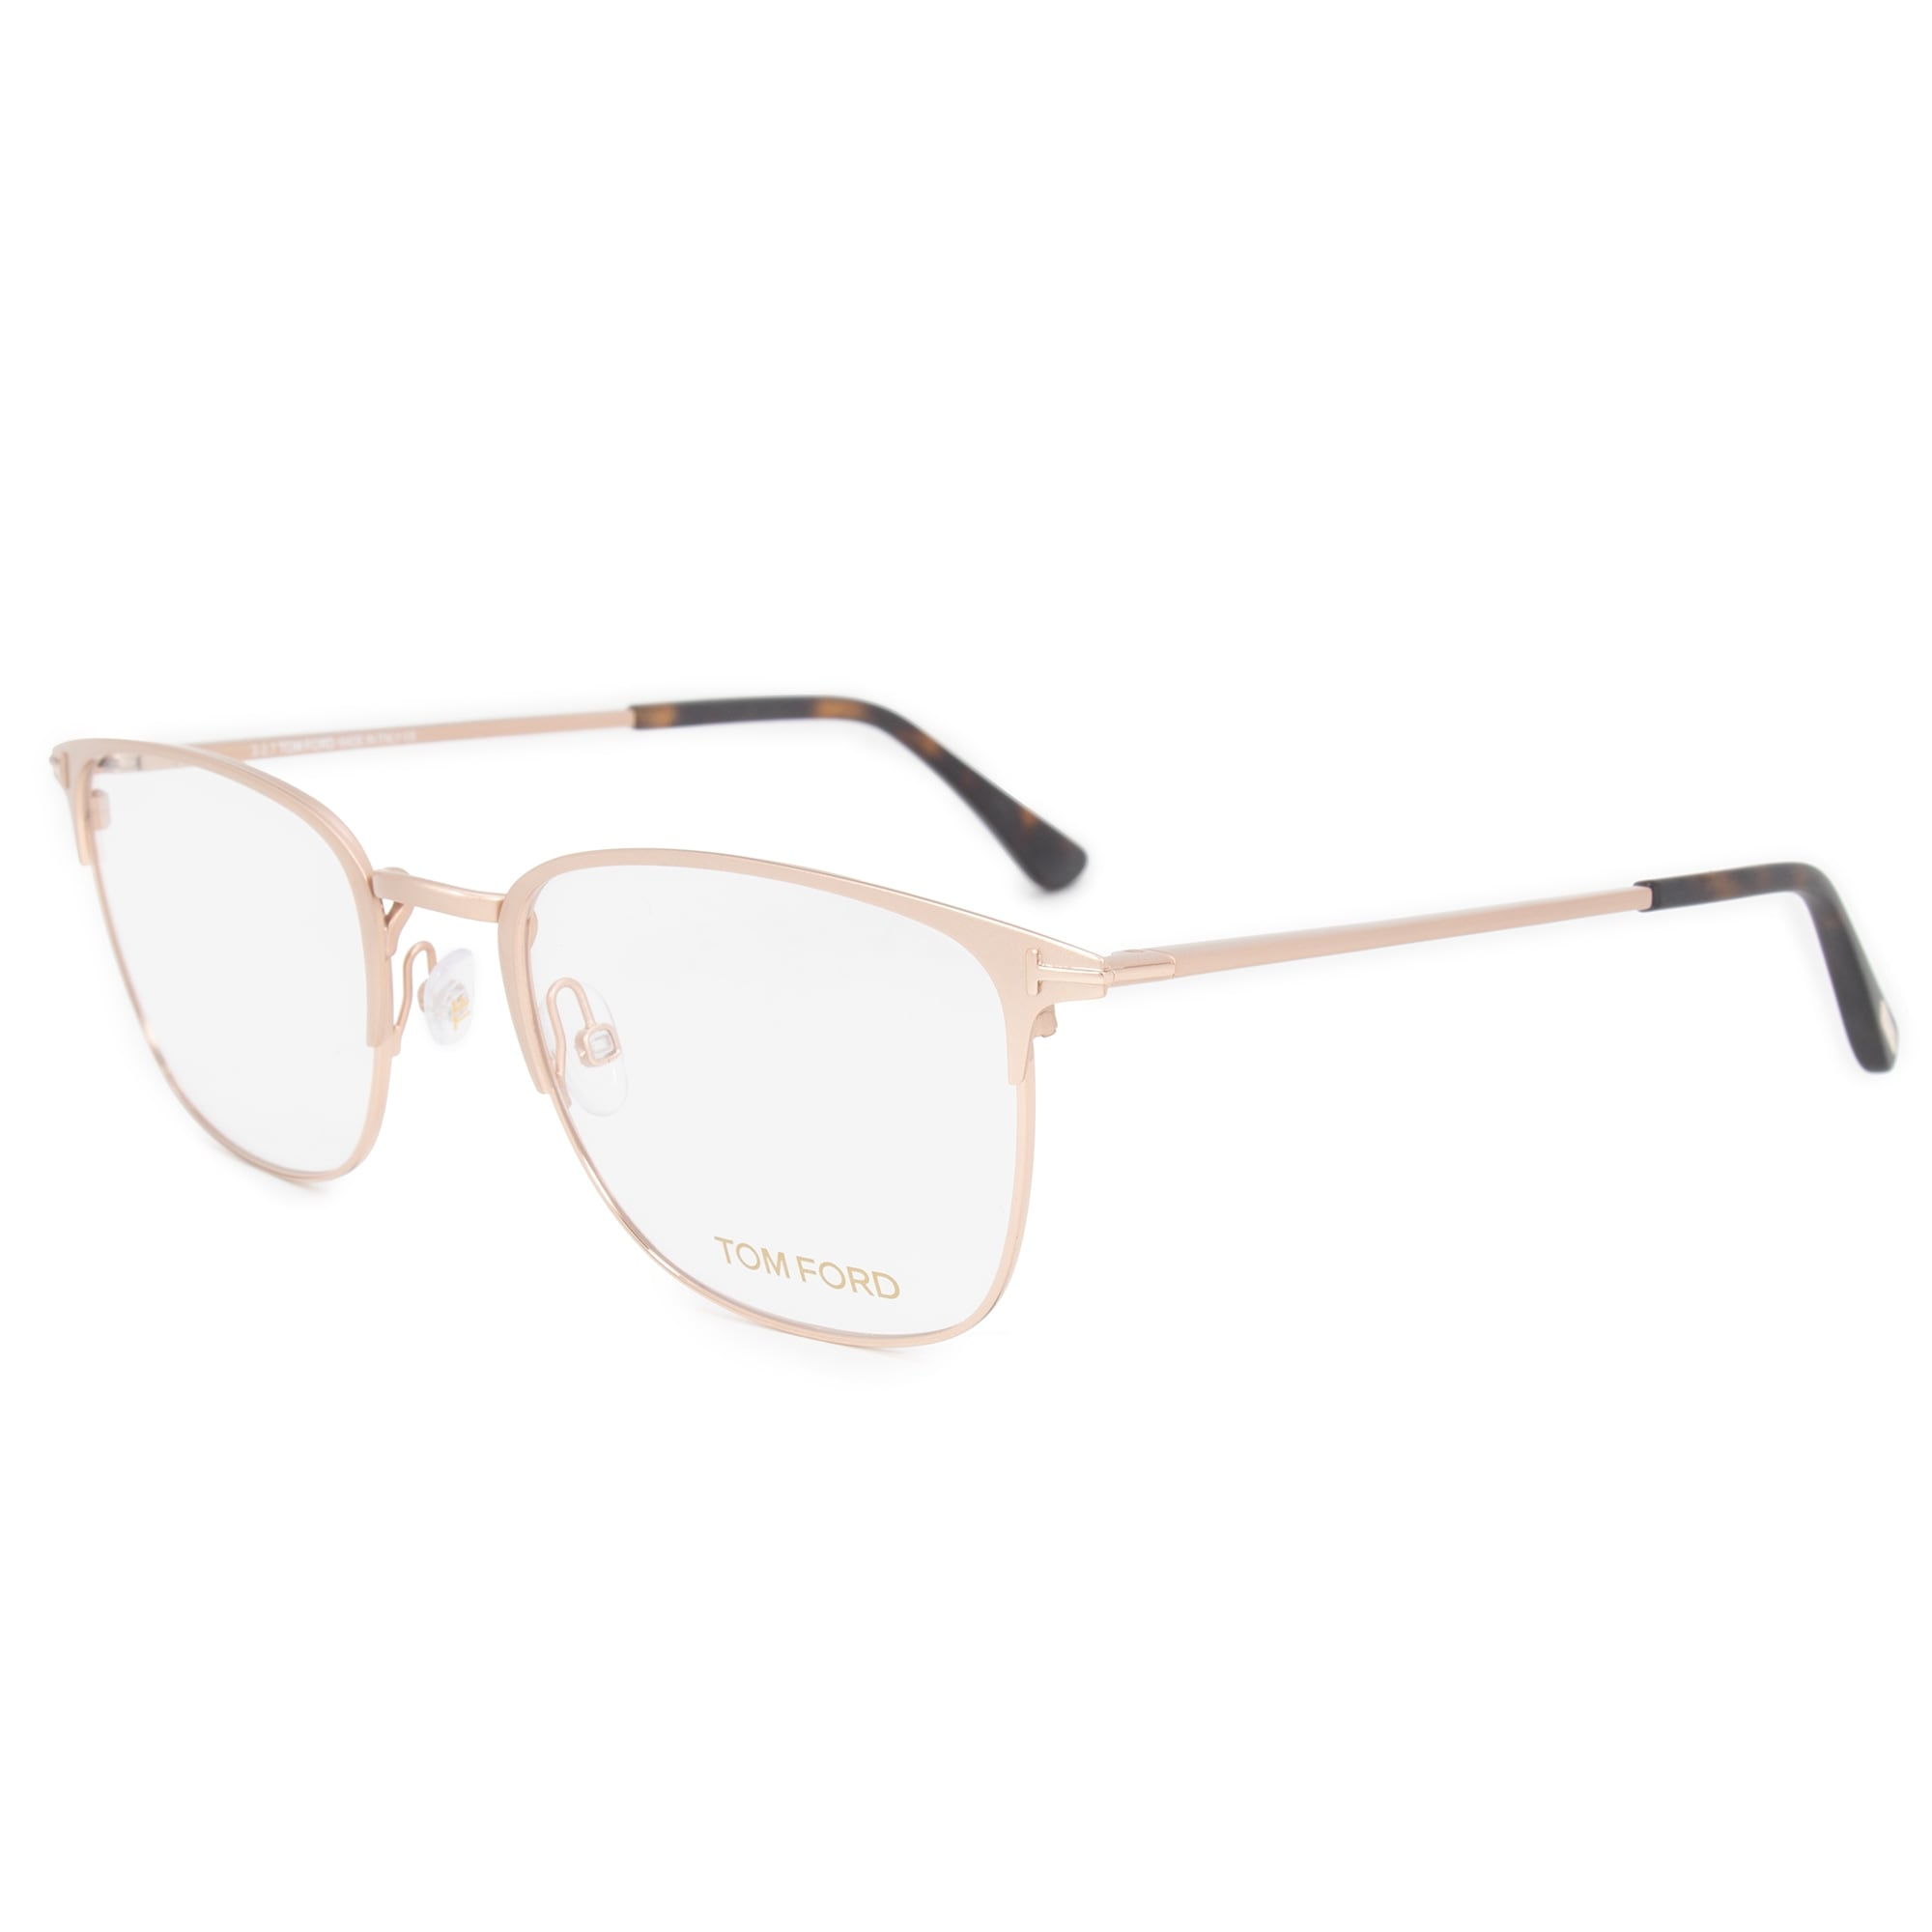 c0eab8c8d2 Shop Tom Ford Square Eyeglass Frames FT5453 029 54 - Free Shipping Today -  Overstock - 25734091